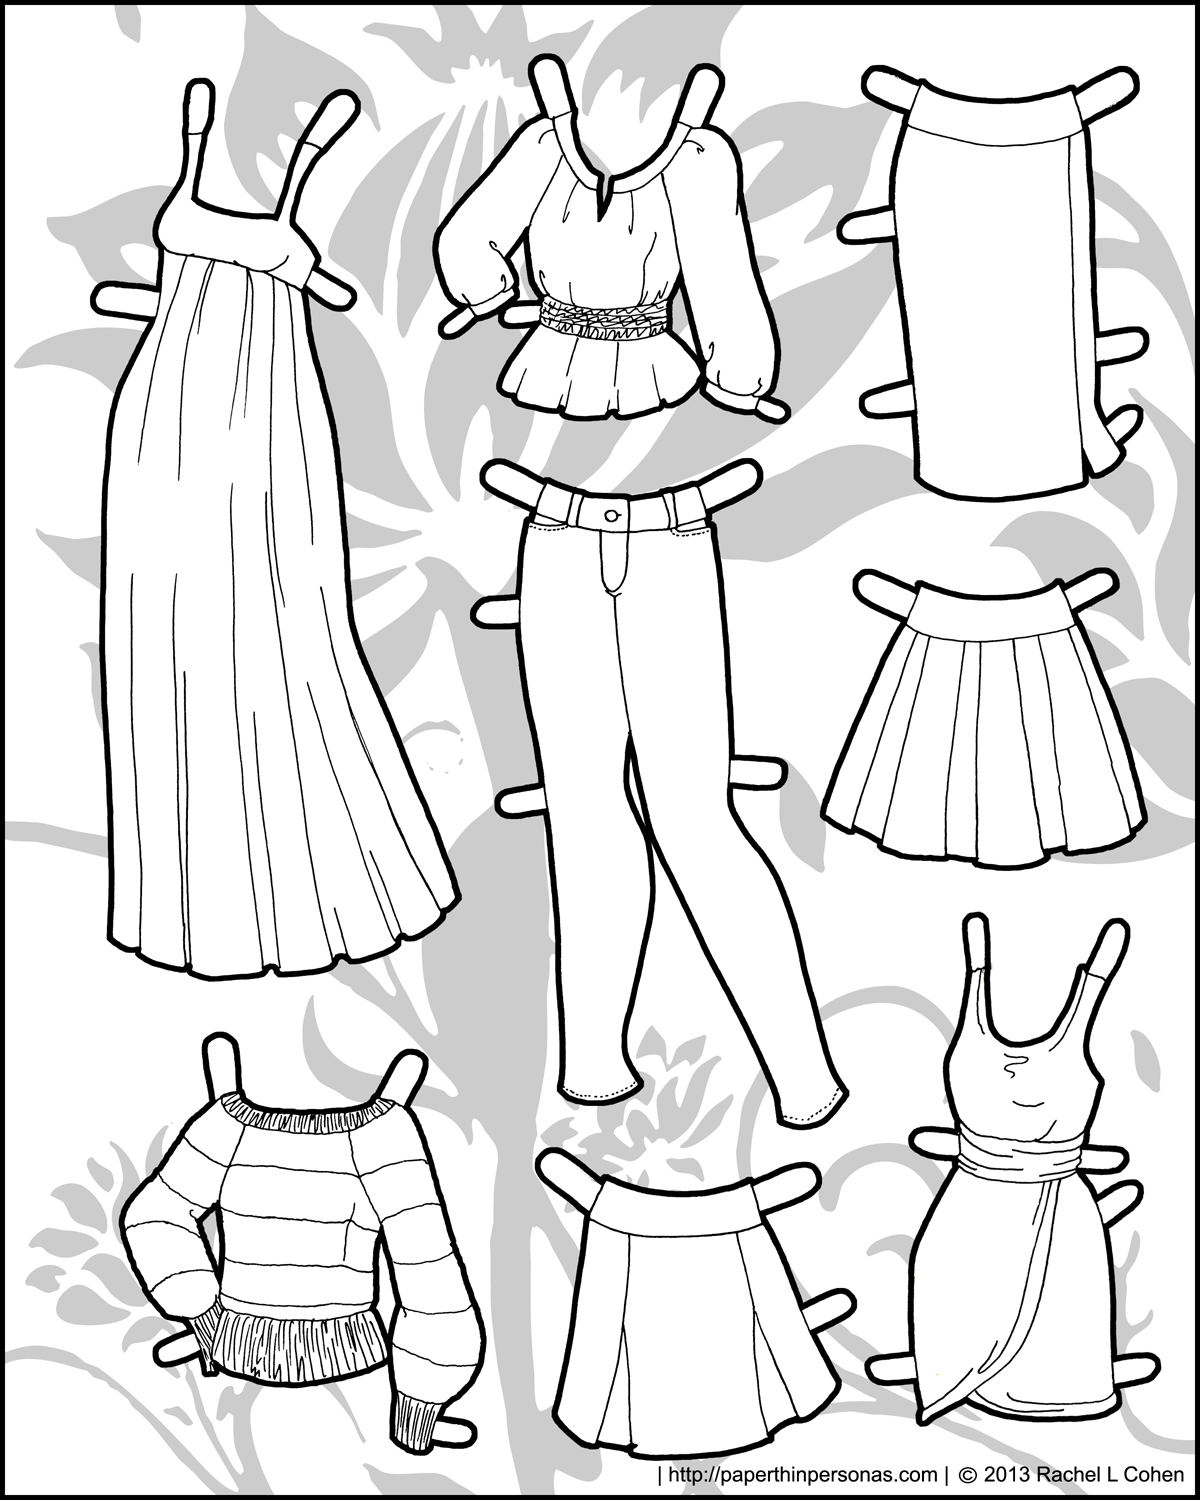 paper doll clothes skinny jeans and peasant tops